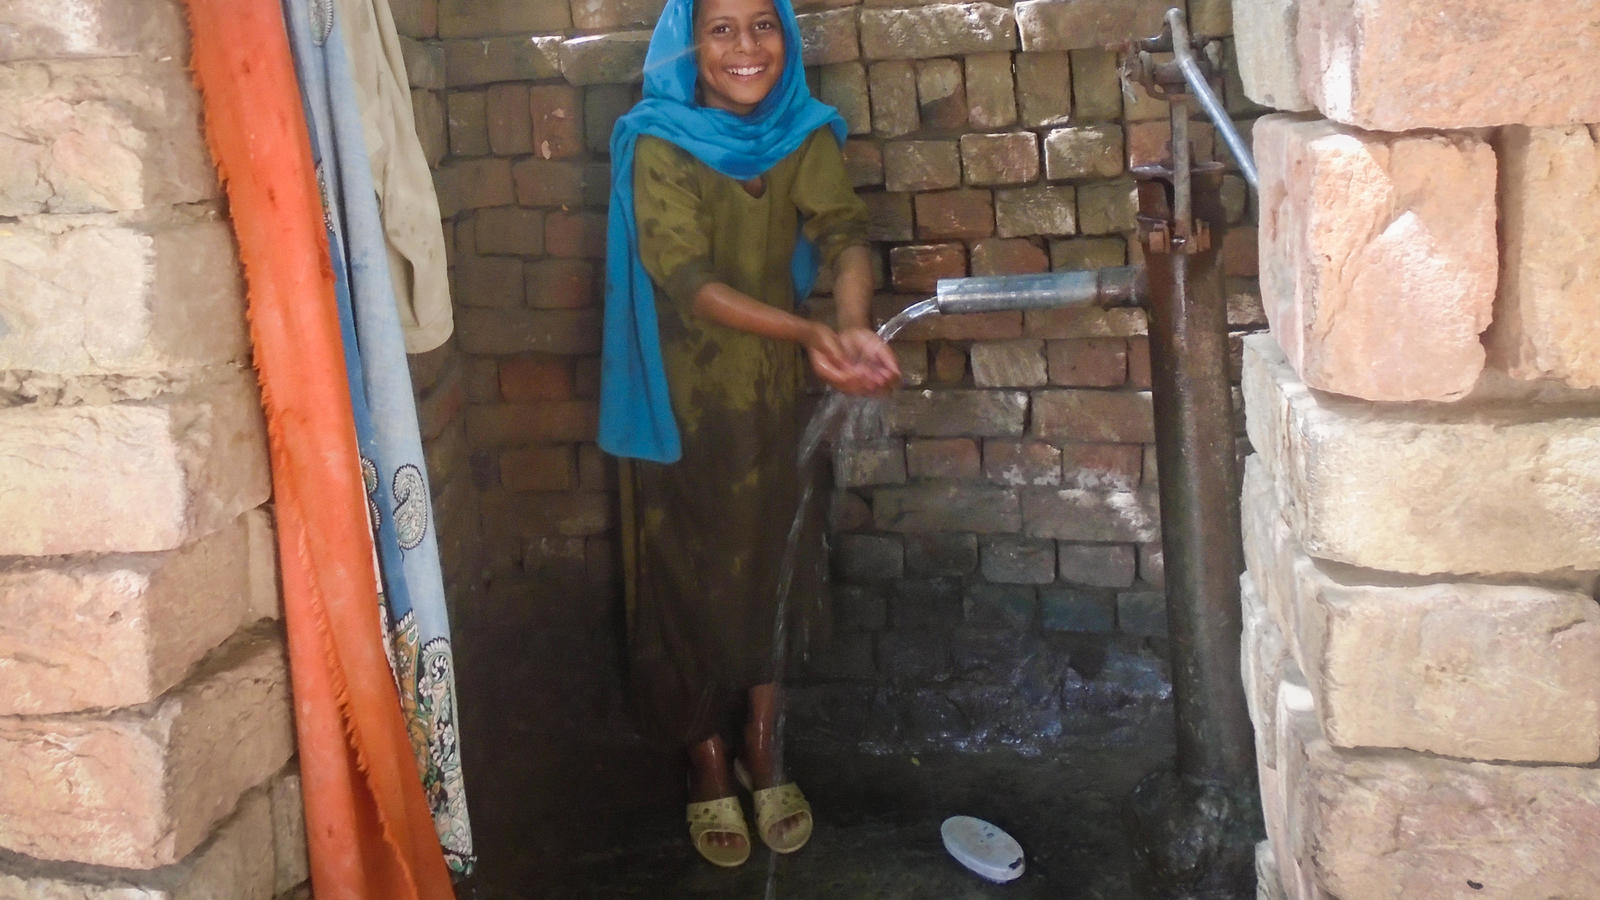 Salma, 10, washing her hands from a pump in her home in the village of Waan Pitafi, Pakistan.